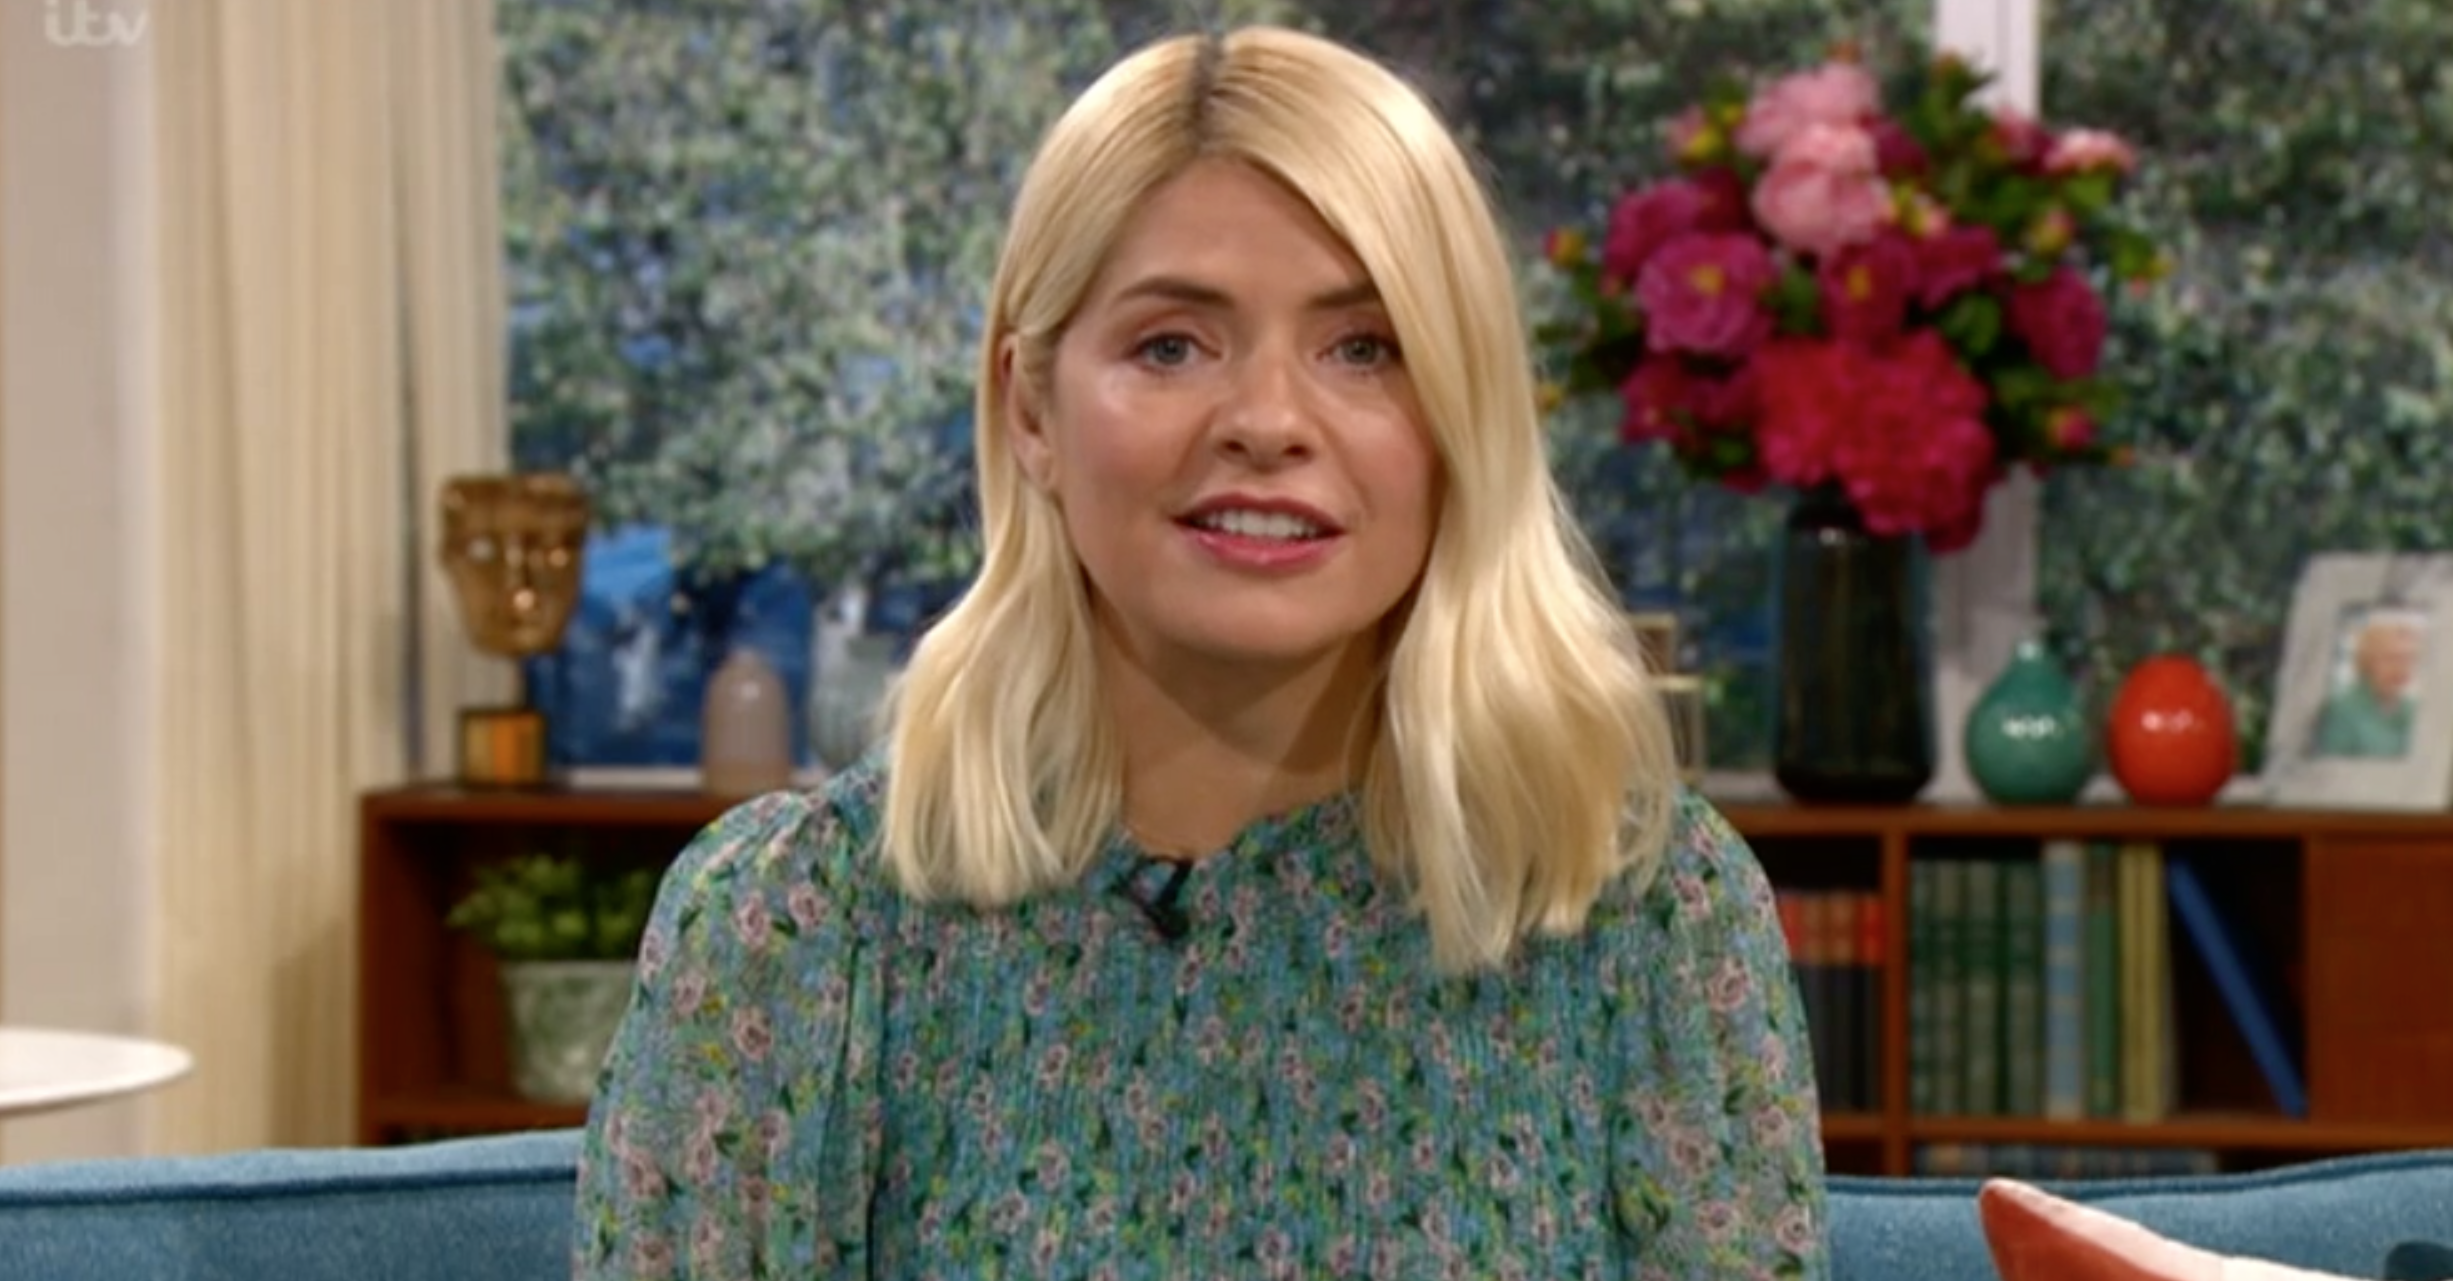 This Morning viewers liken Holly Willoughby's 'quaint' floral dress to their 'grandmother's curtains'